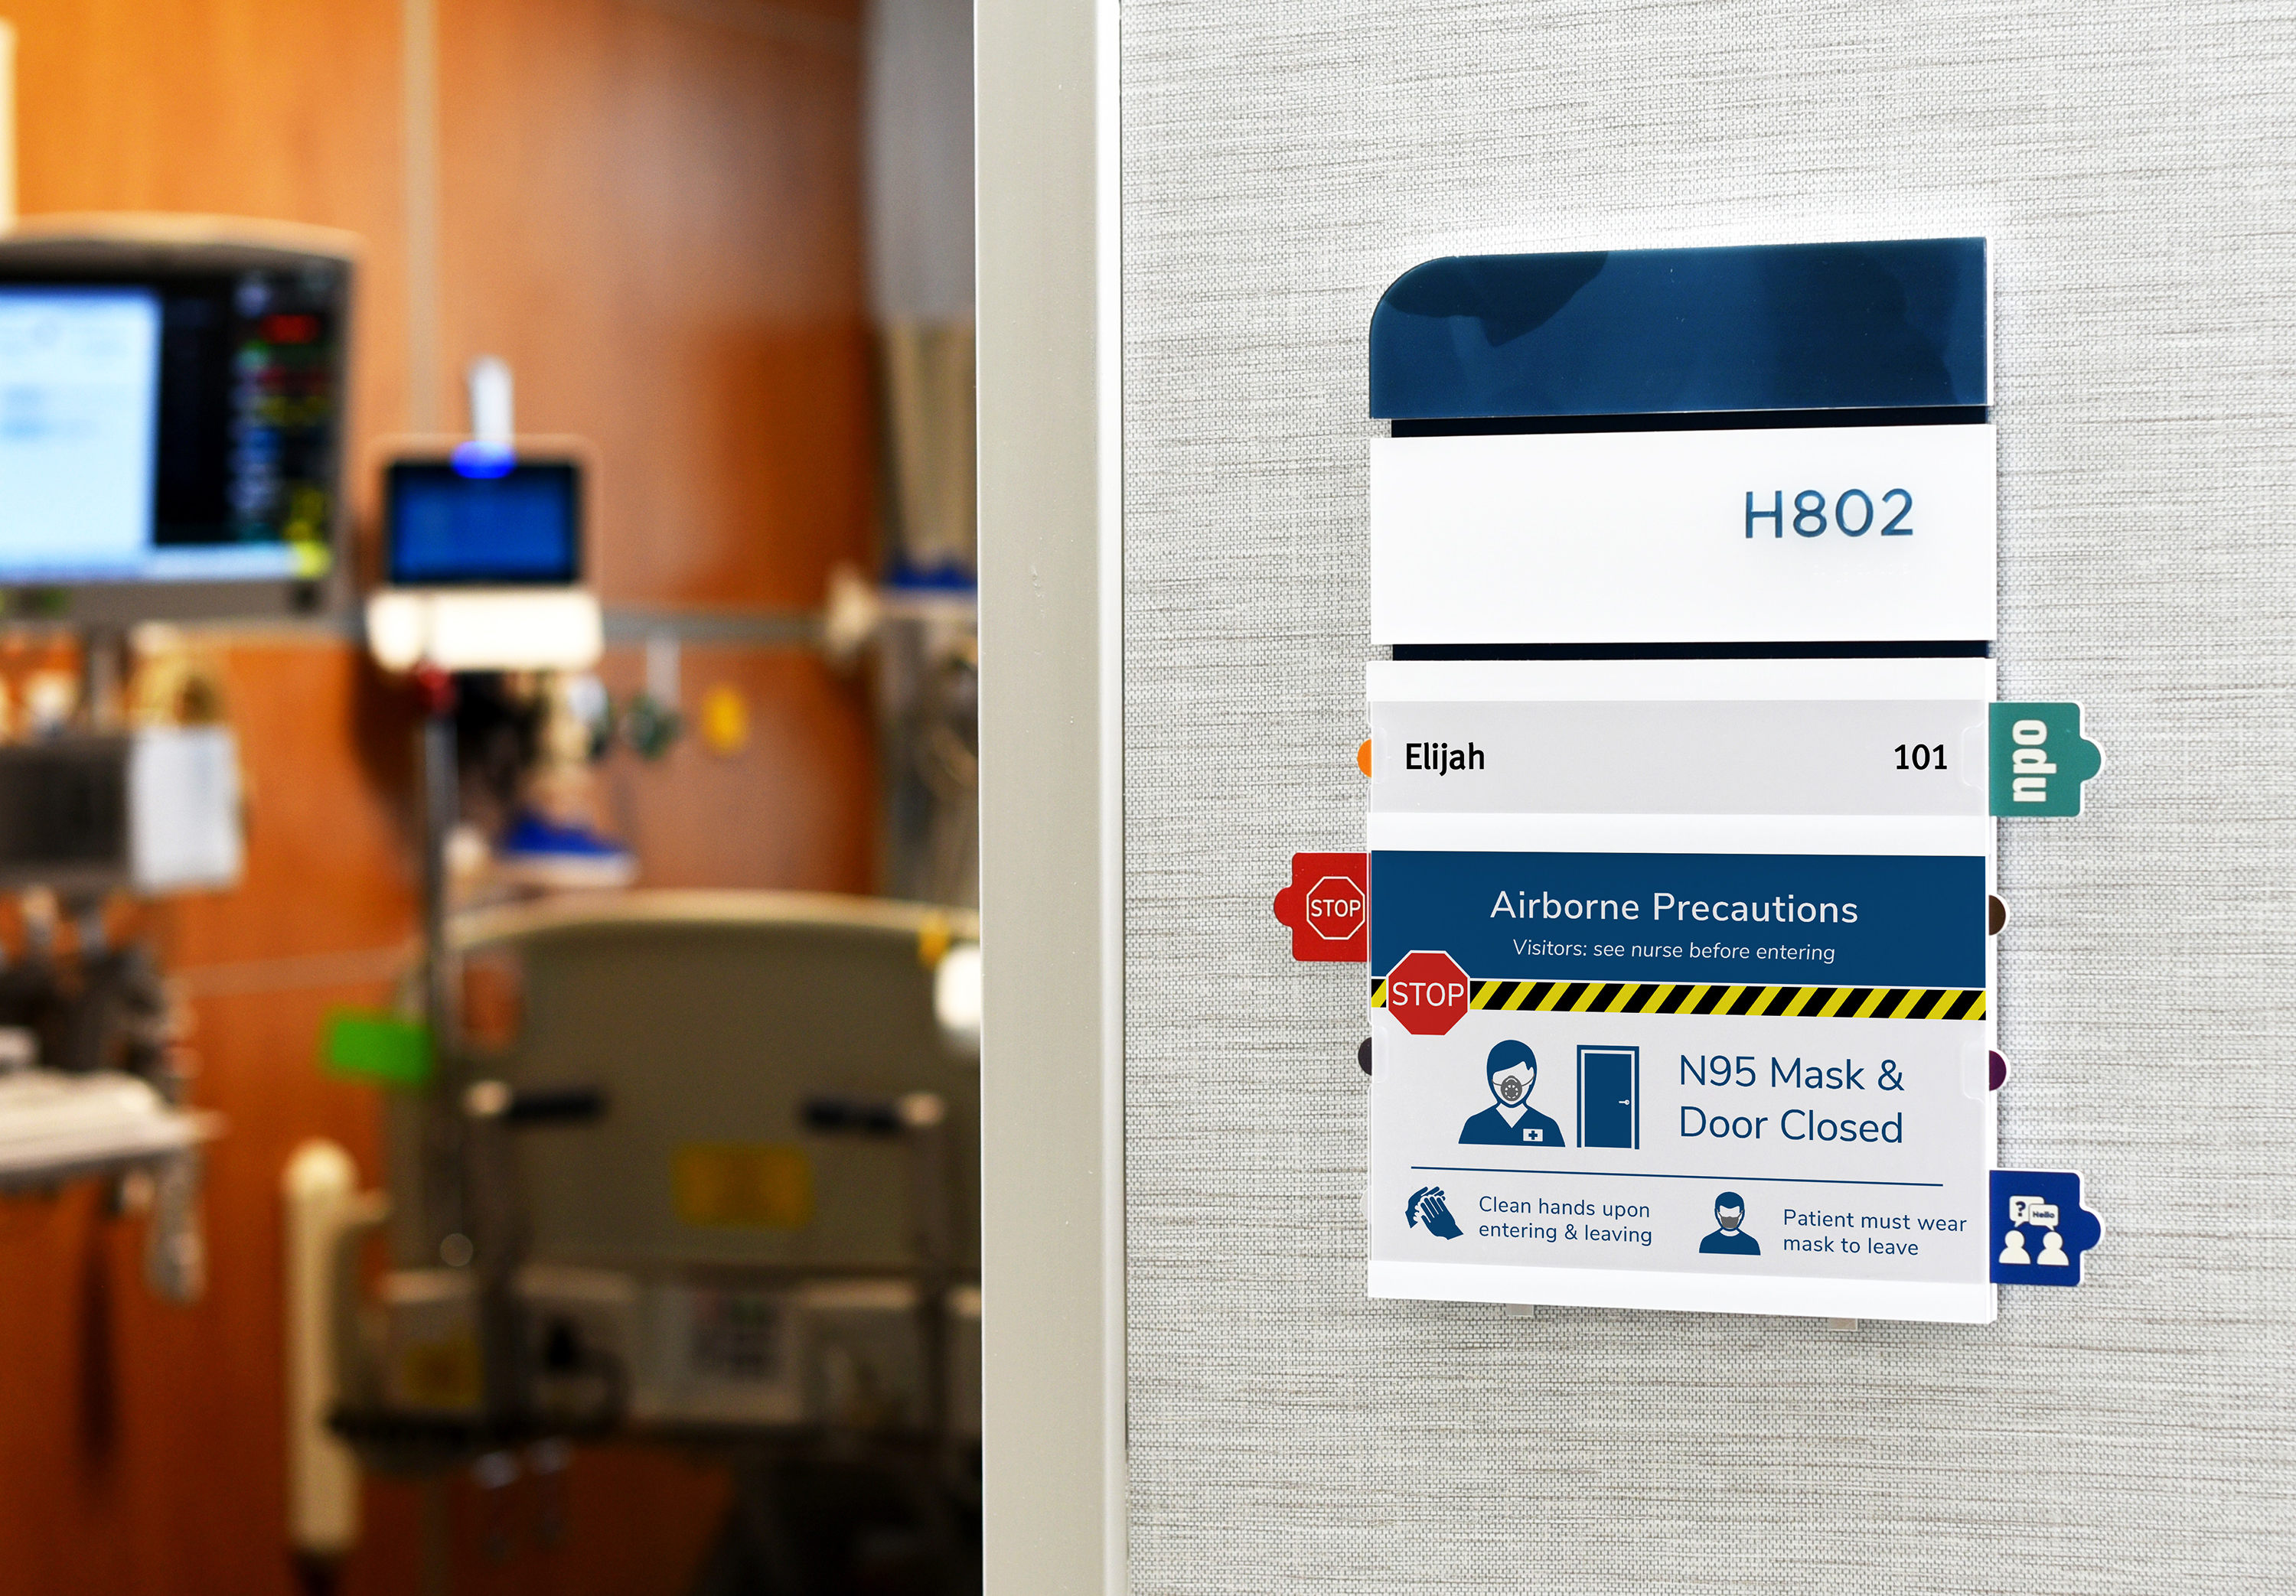 Attend patient room signs at Rochester General Hospital